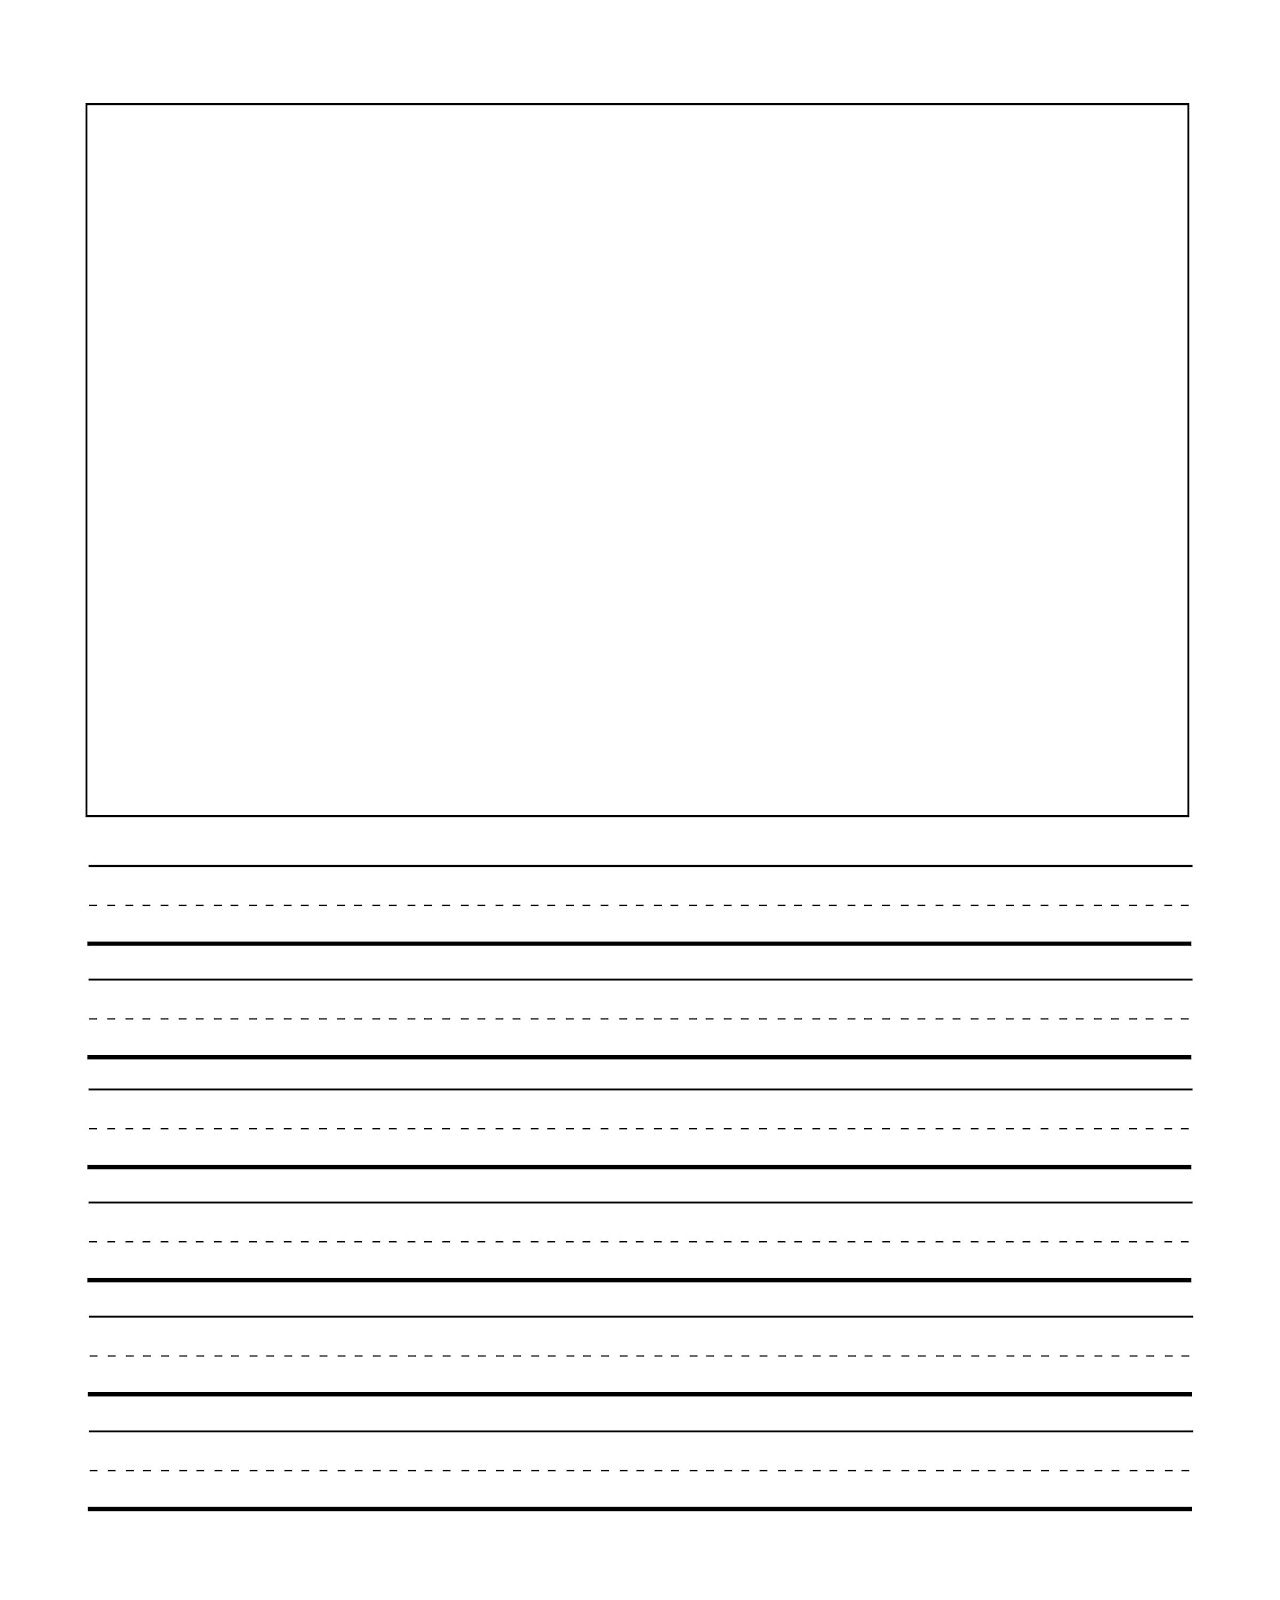 Worksheet Printable Handwriting Paper For Kindergarten 1000 images about writing paper on pinterest handwriting journal and paper